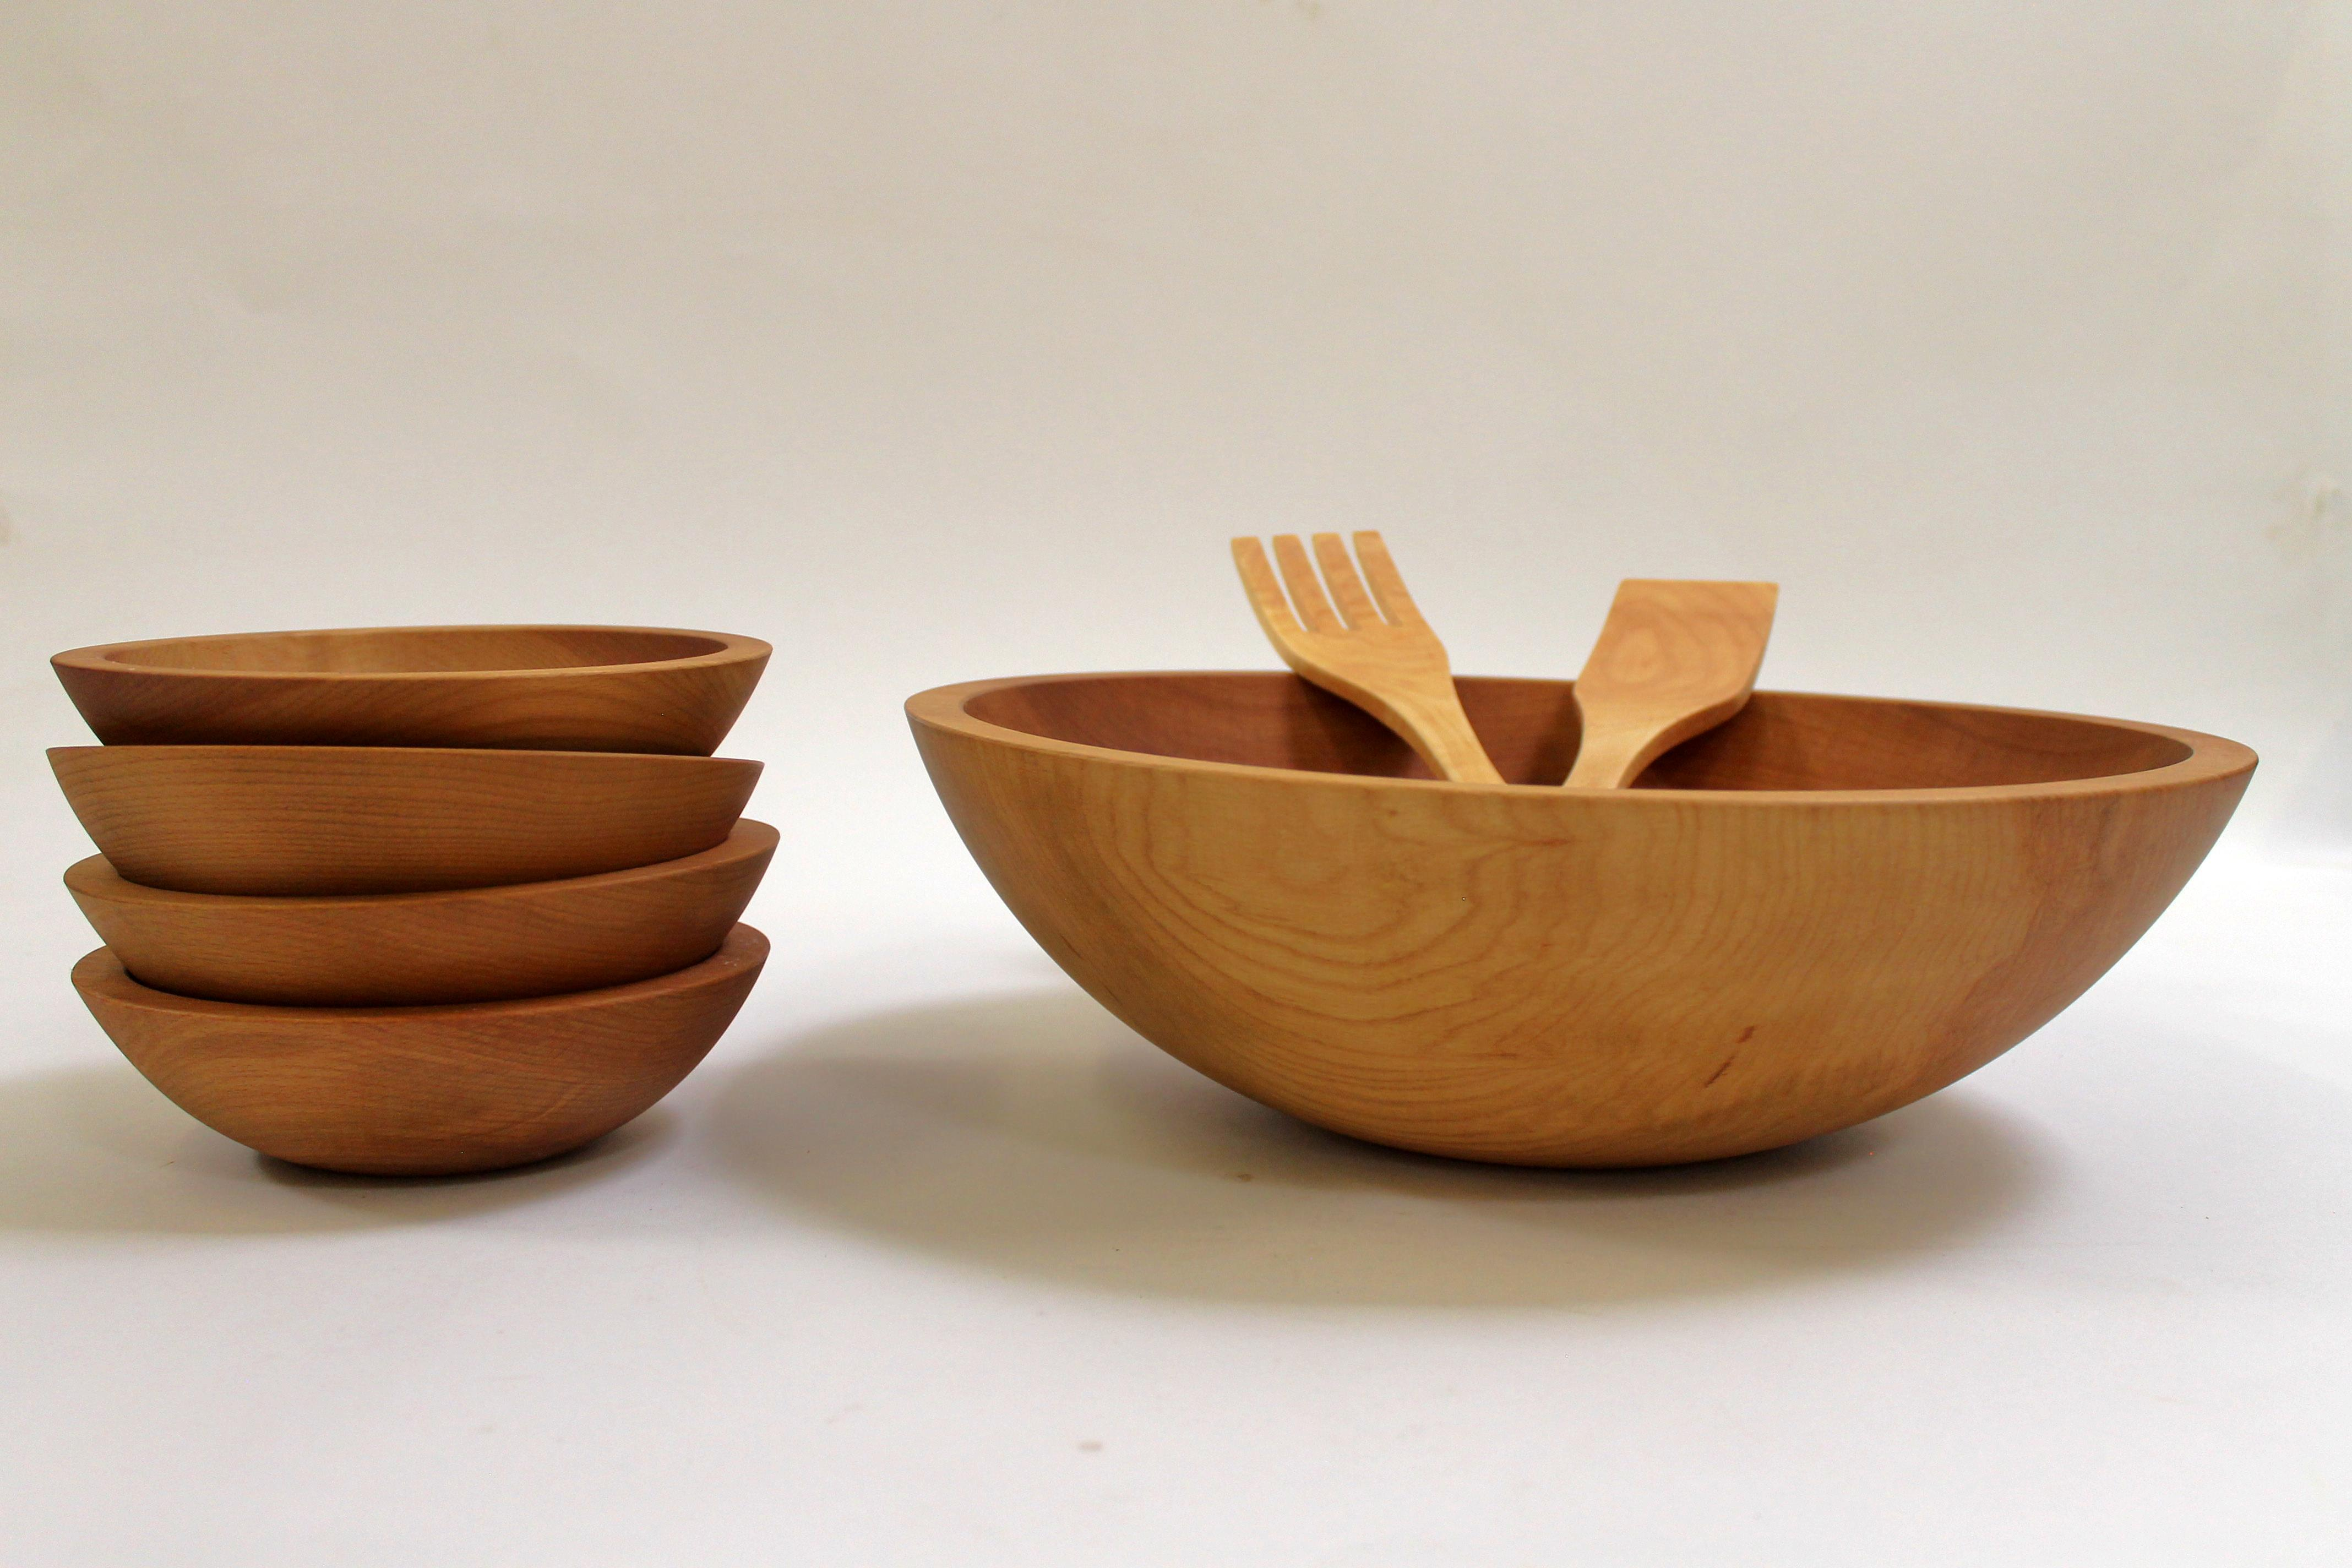 15 inch Beech Bowl Set - Light Walnut Finish 115WBLT5S